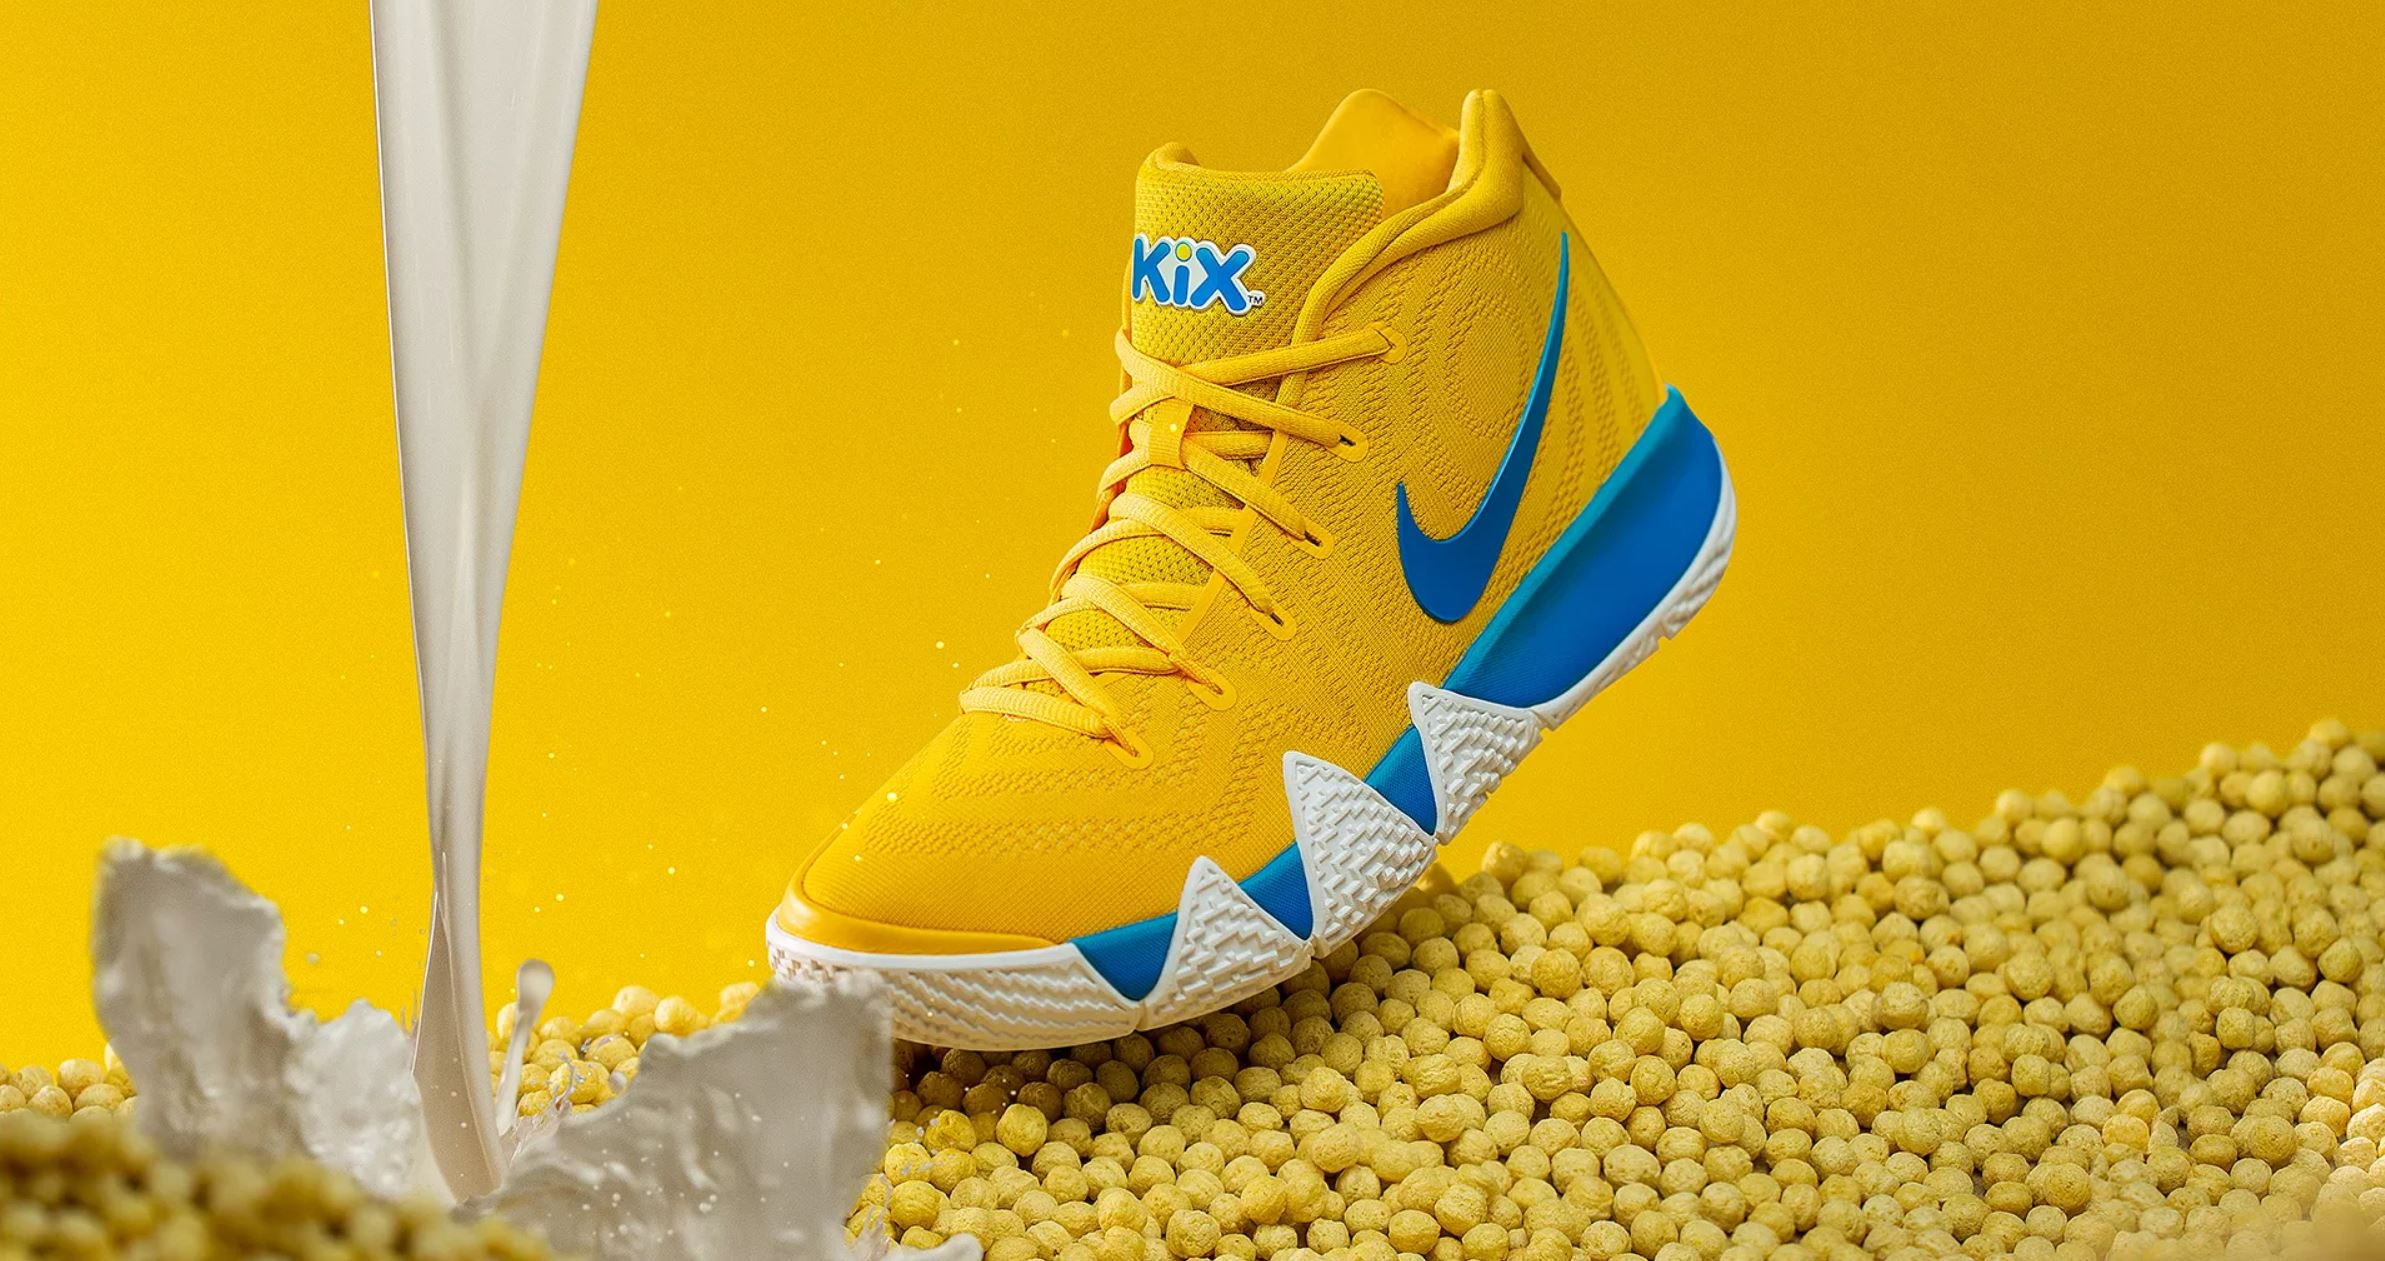 online store 1403d 32978 Nike Unveils Kyrie 4 'Cereal Pack' with Lucky Charms, Kix ...